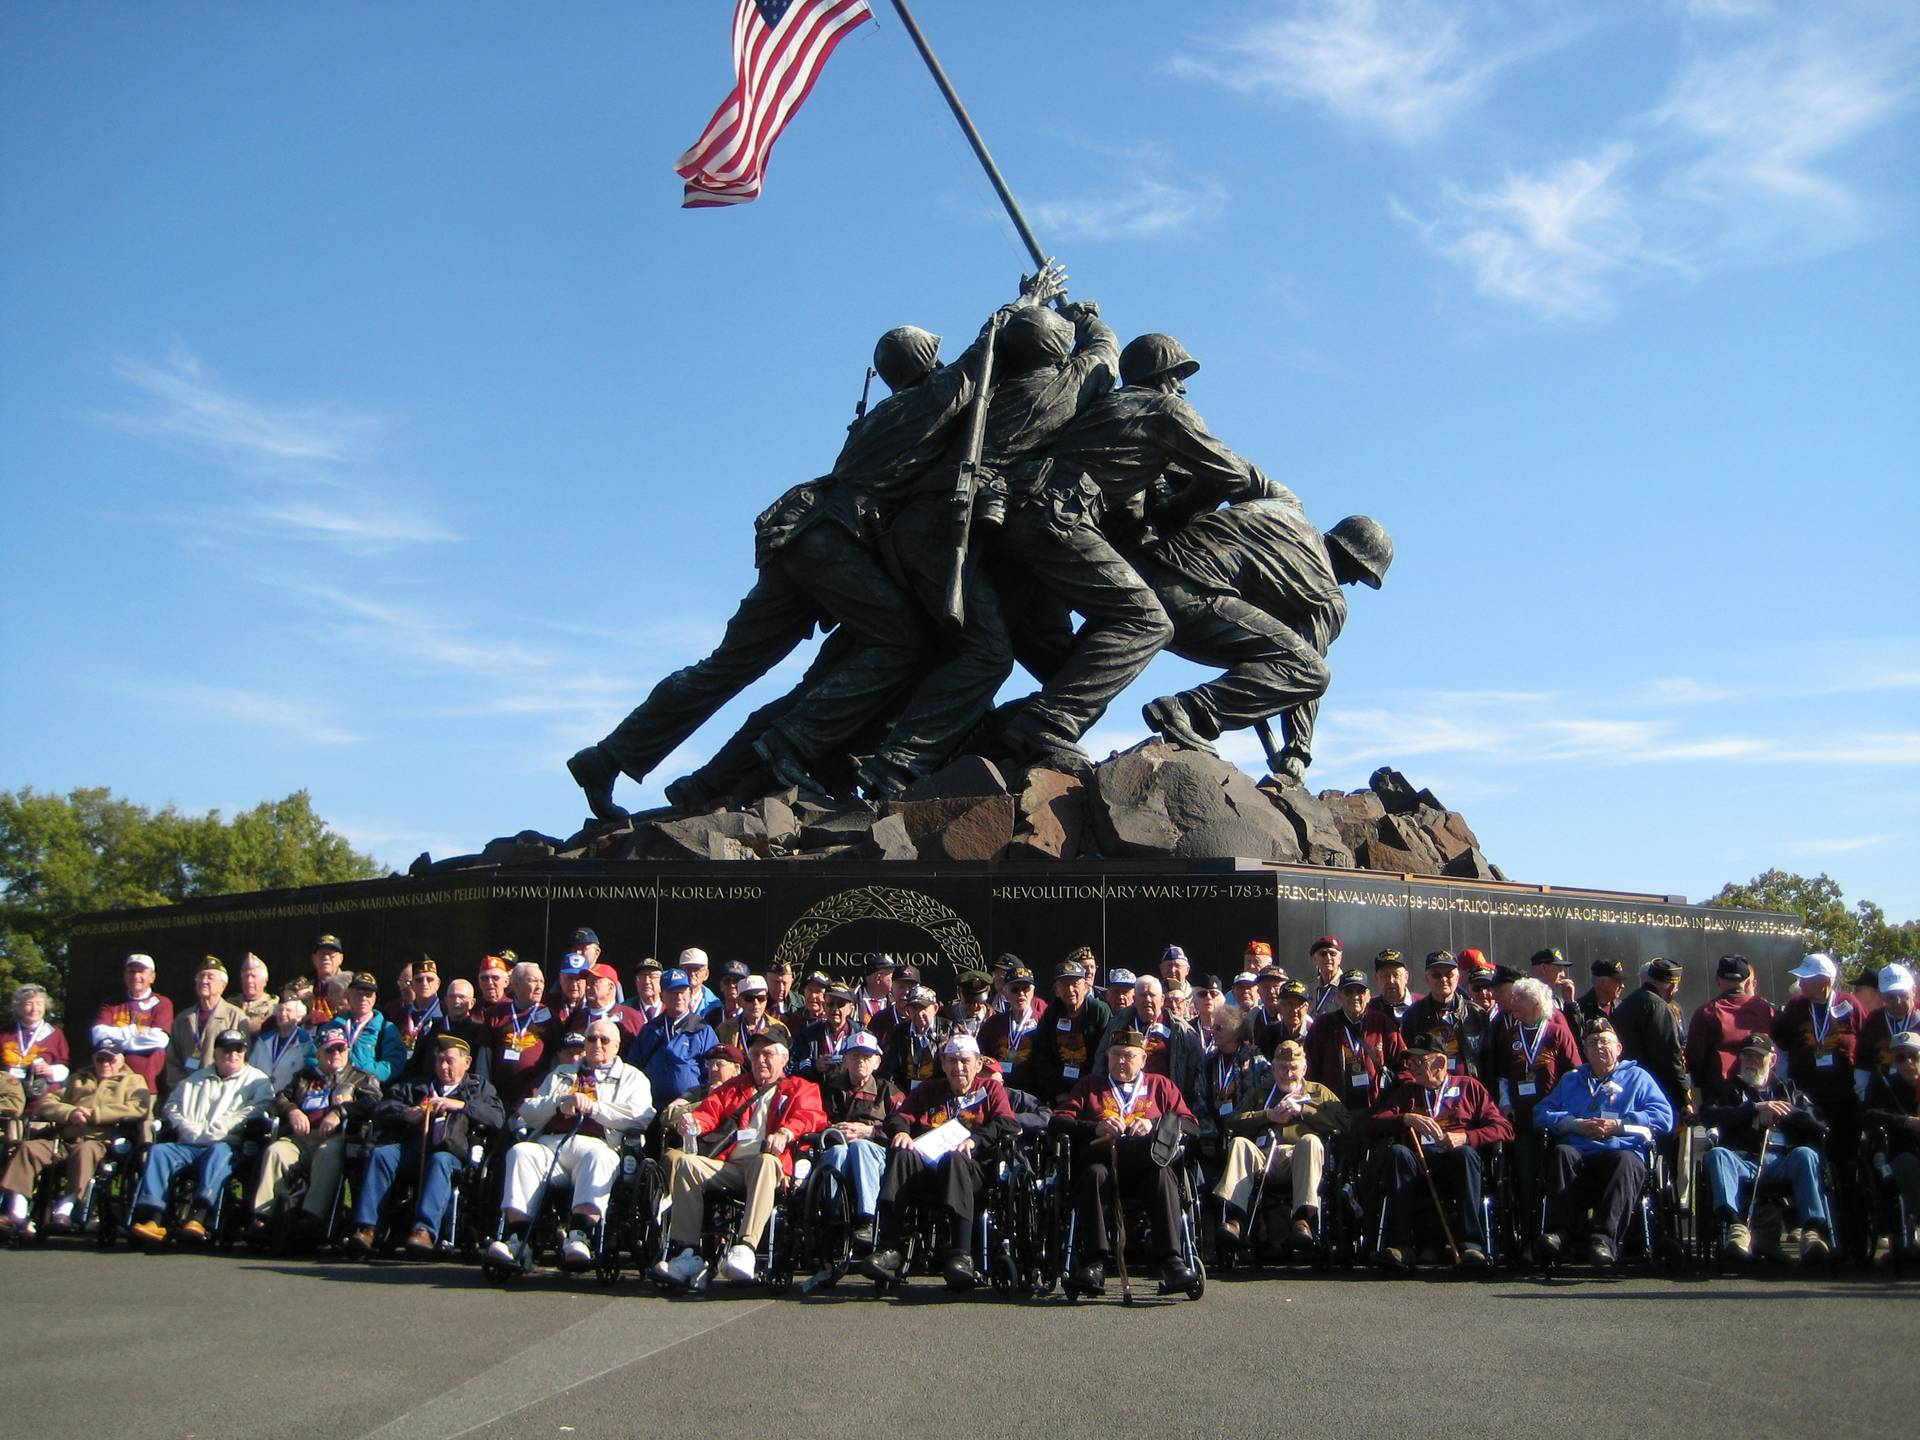 Contemporary photo of a large group of people in front of the Marine Corps/Iwo Jima War Memorial.